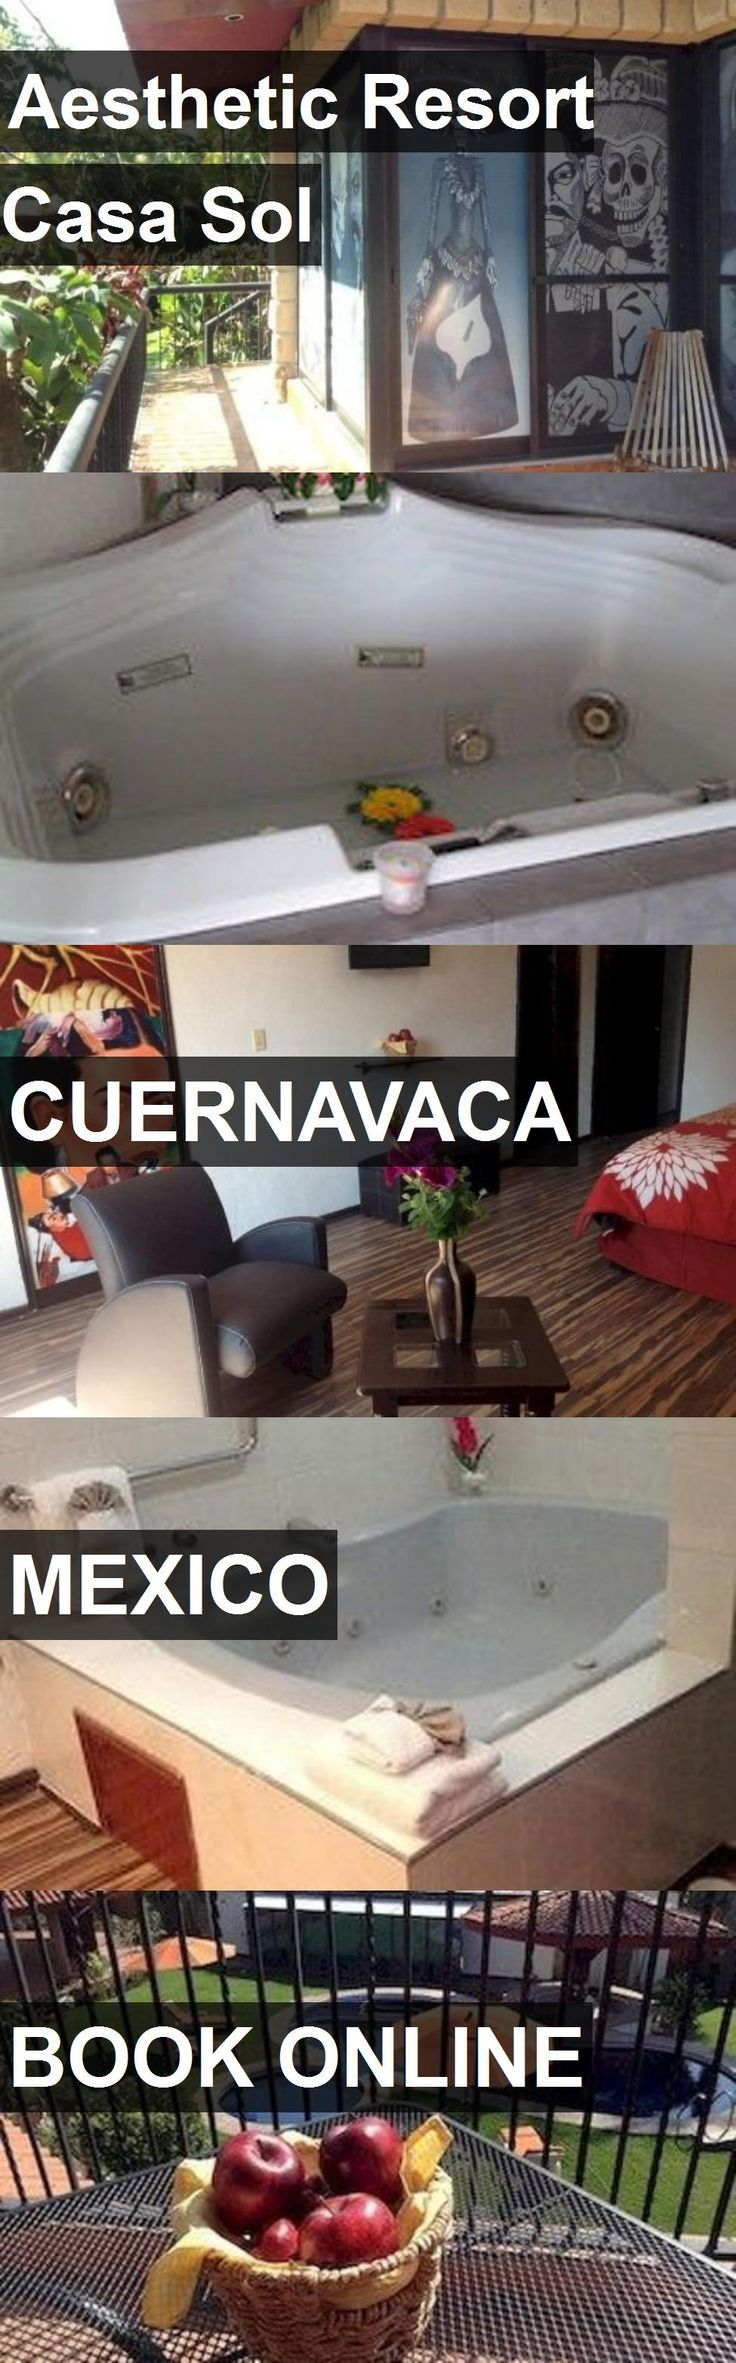 Hotel Aesthetic Resort Casa Sol in Cuernavaca, Mexico. For more information, photos, reviews and best prices please follow the link. #Mexico #Cuernavaca #travel #vacation #hotel